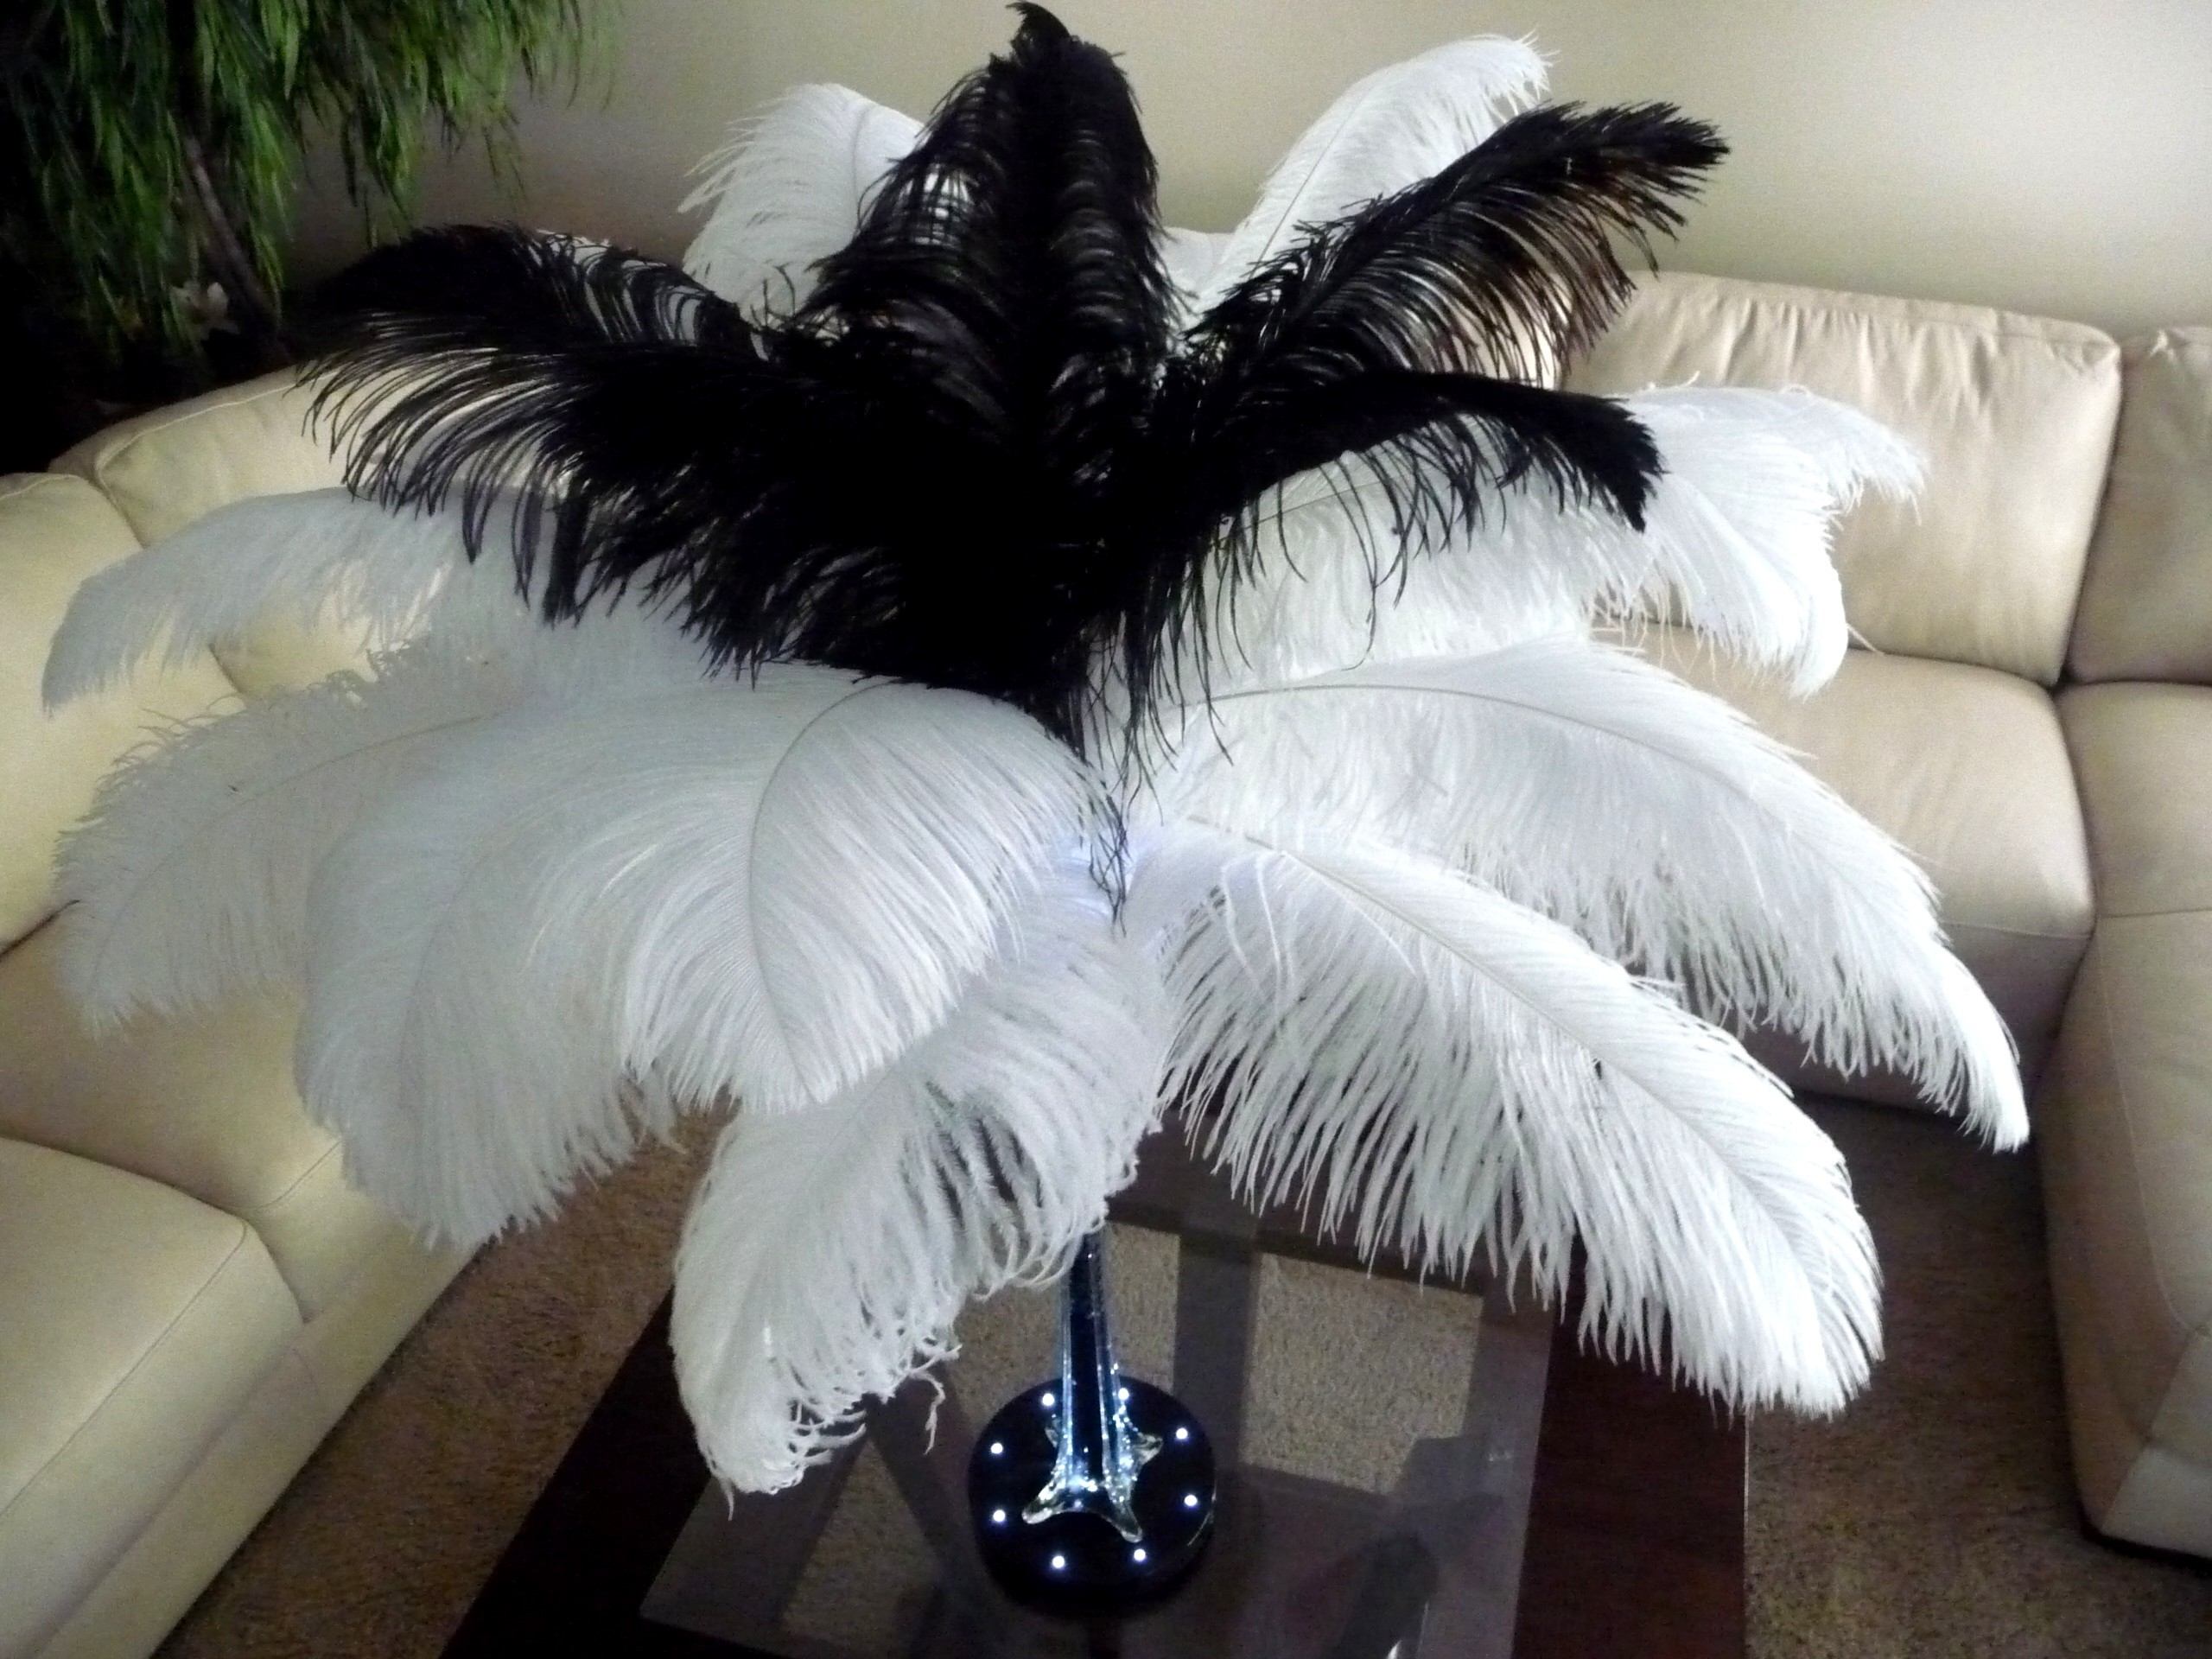 Beauty, Ceremony, Inspiration, Reception, Flowers & Decor, white, black, Feathers, Ceremony Flowers, Centerpieces, Flowers, Board, Feather, Ostrich, Savannah event decor